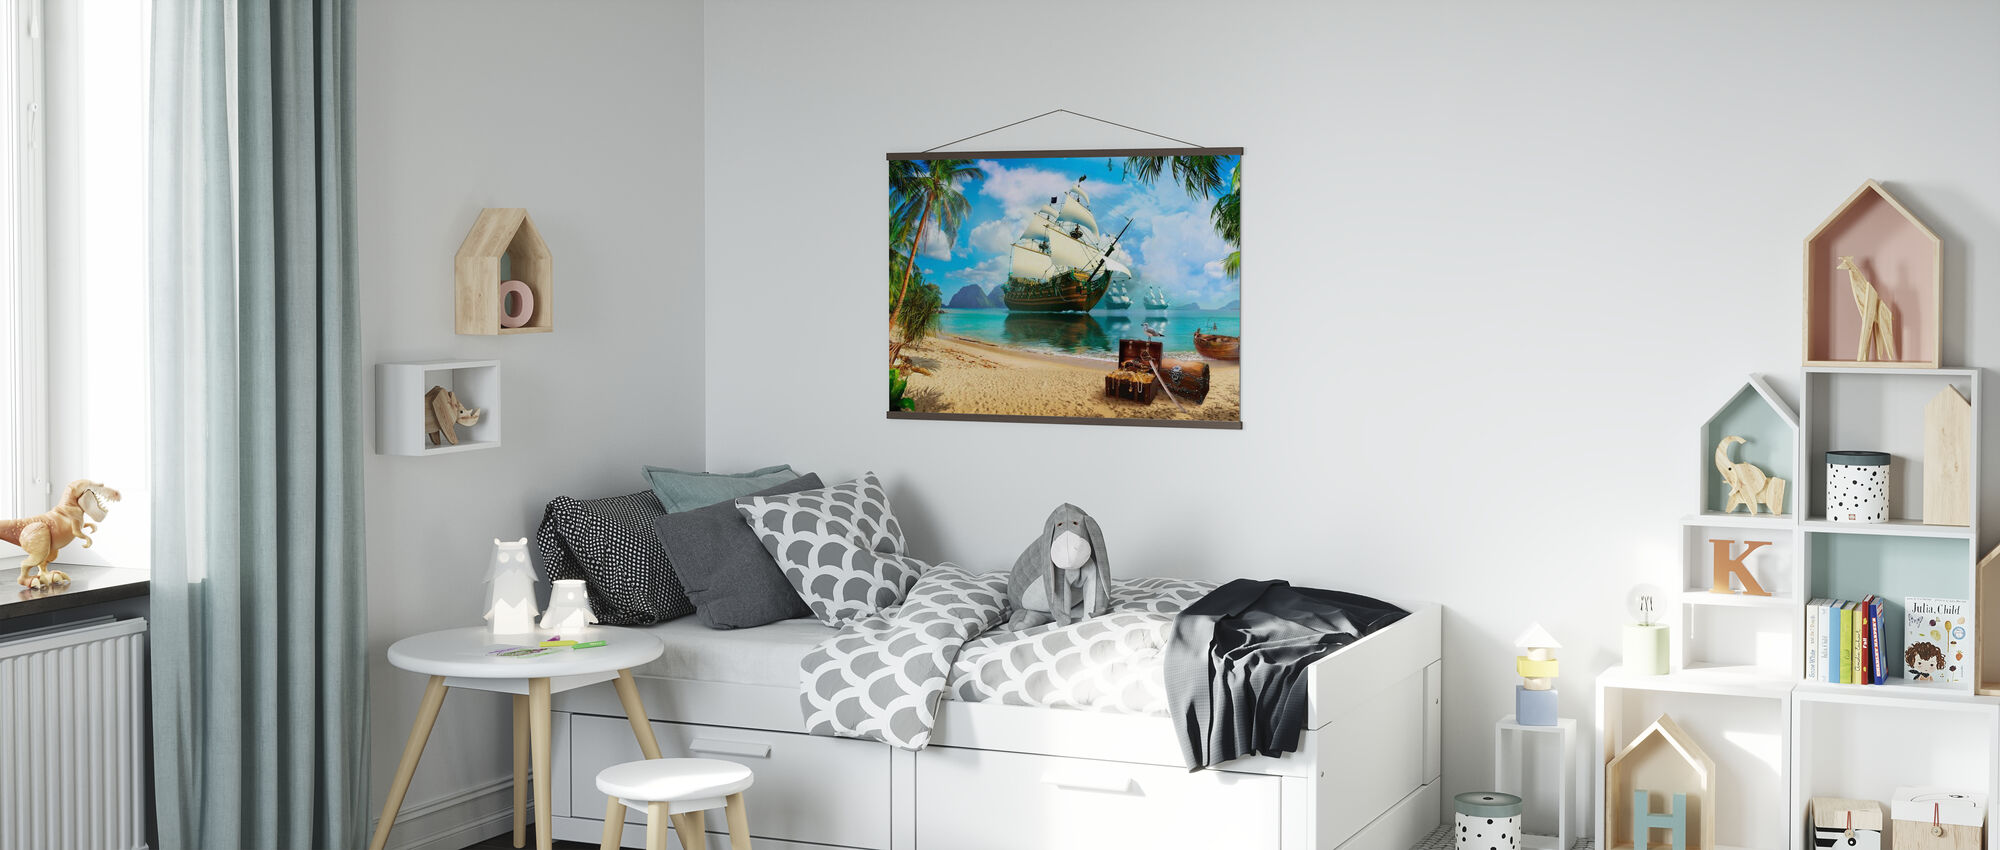 Pirate Treasure Island - Poster - Kids Room